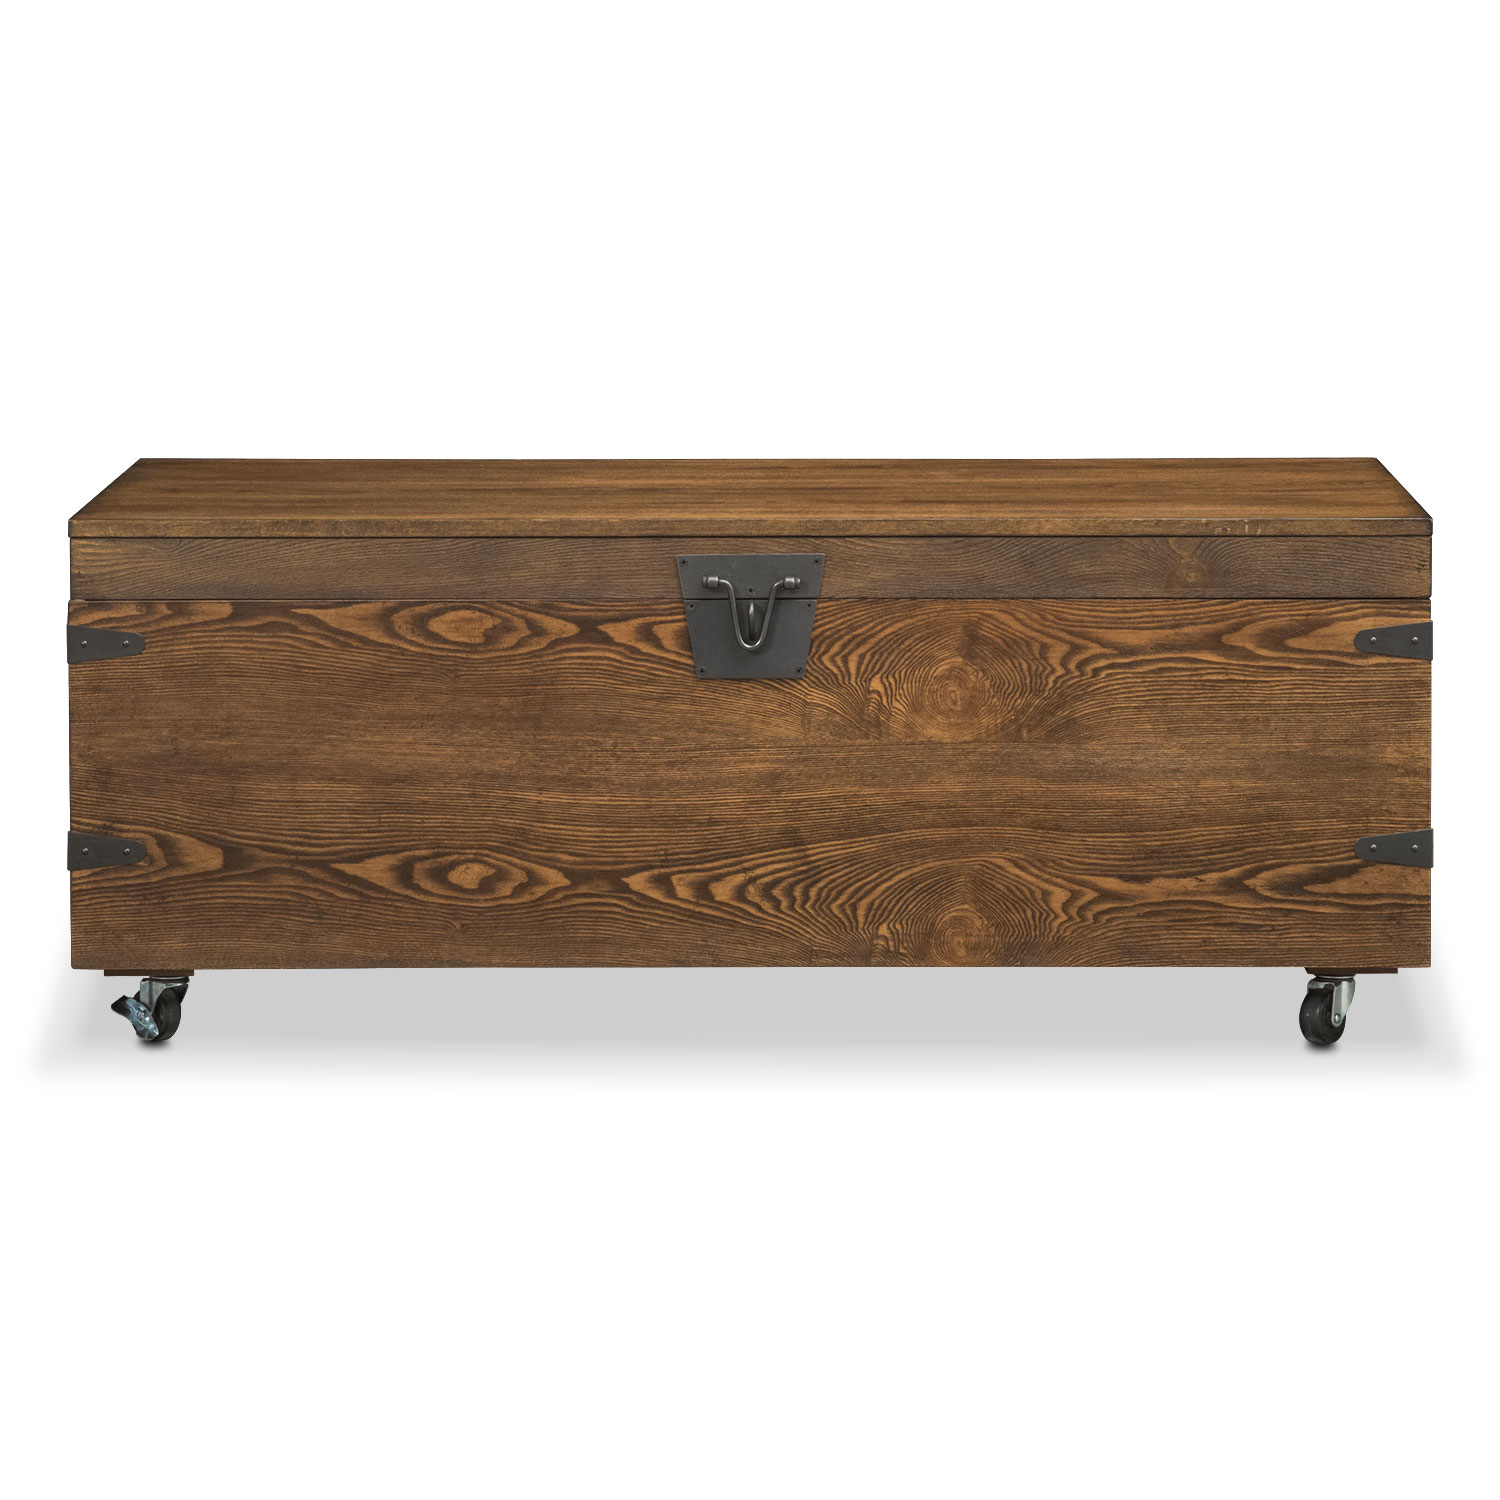 Shipyard Trunk Cocktail Table Nutmeg